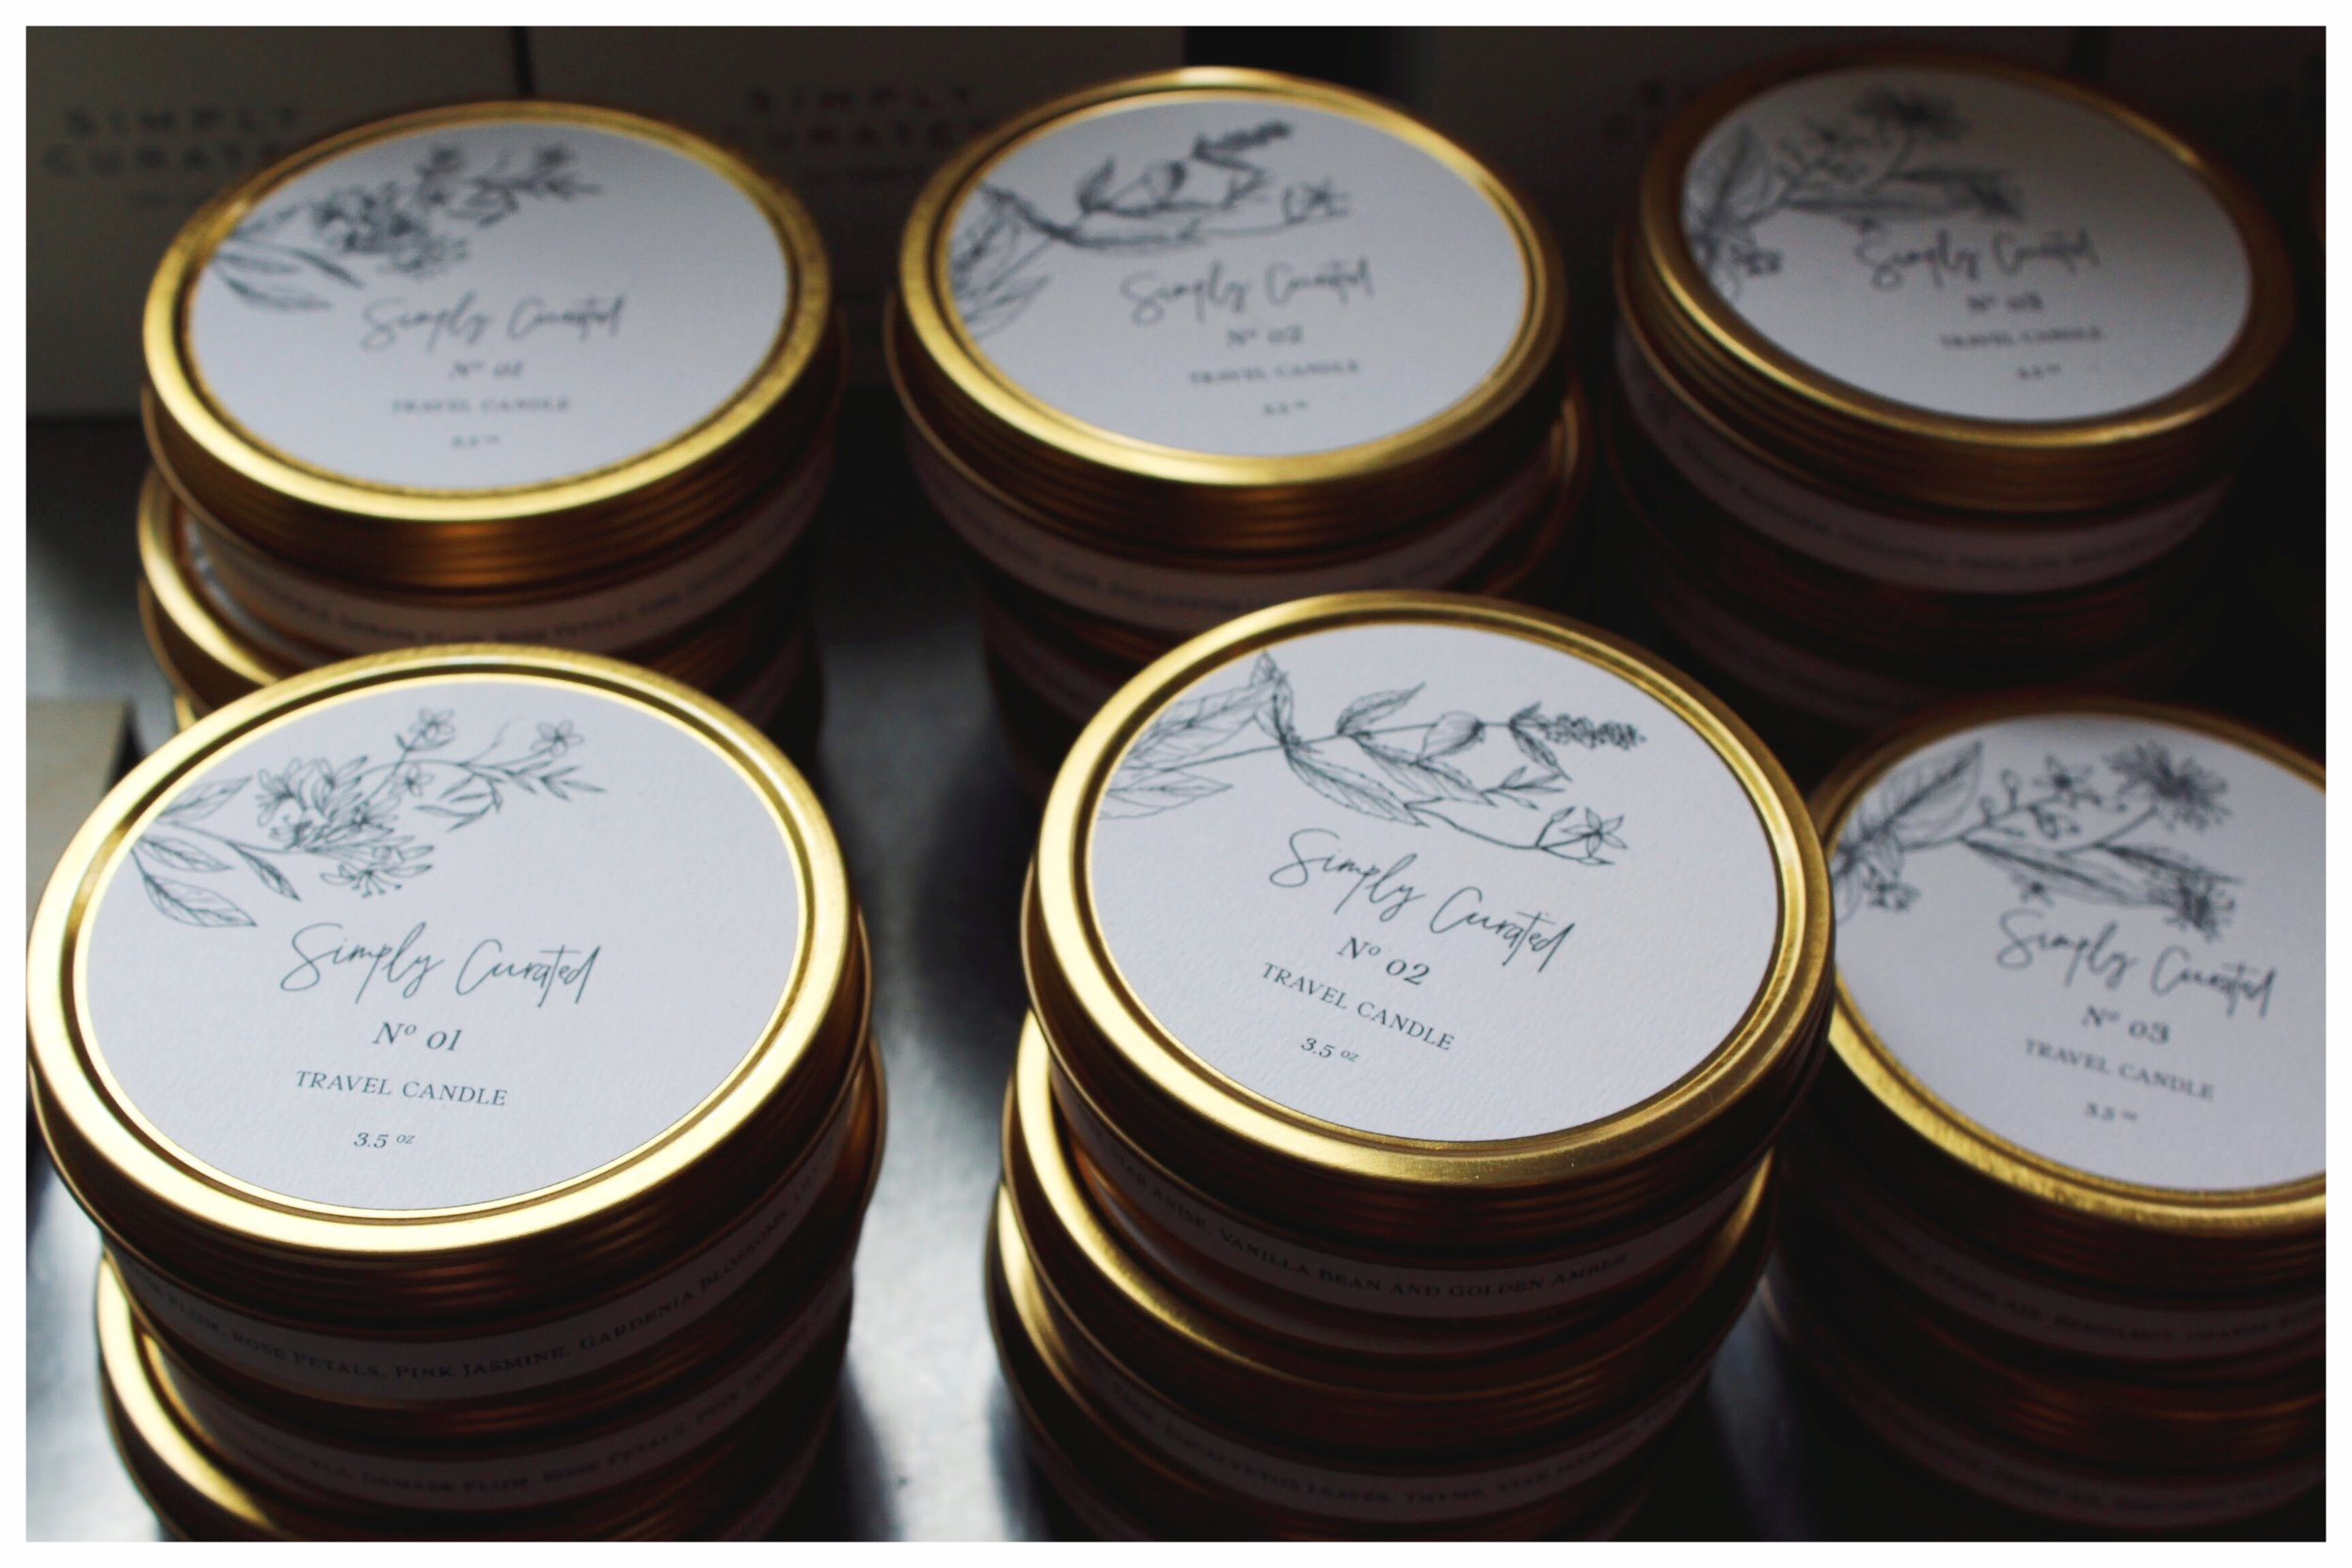 Simply Curated Soy Candles from Michigan